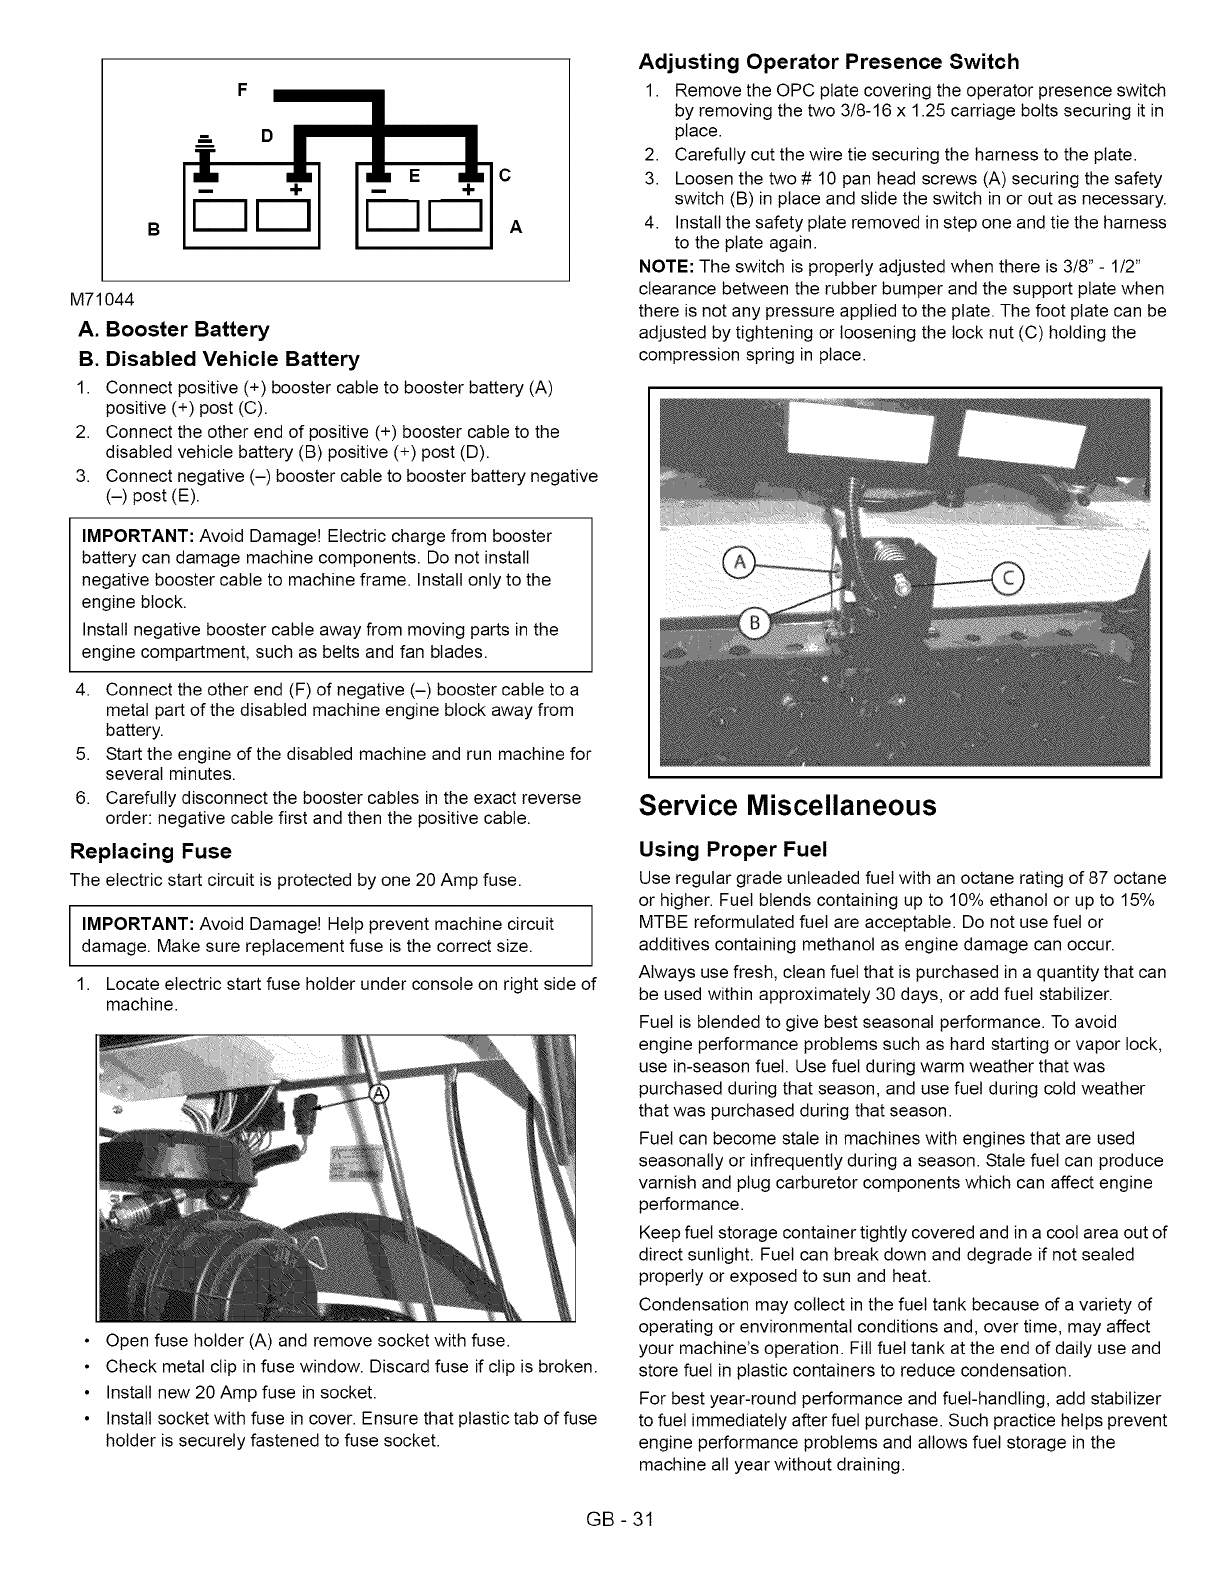 Ariens 99480600 101 999999 User Manual Zero Turn Mower Manuals And Fiat Grande Punto Fuse Box Glove Compartment C